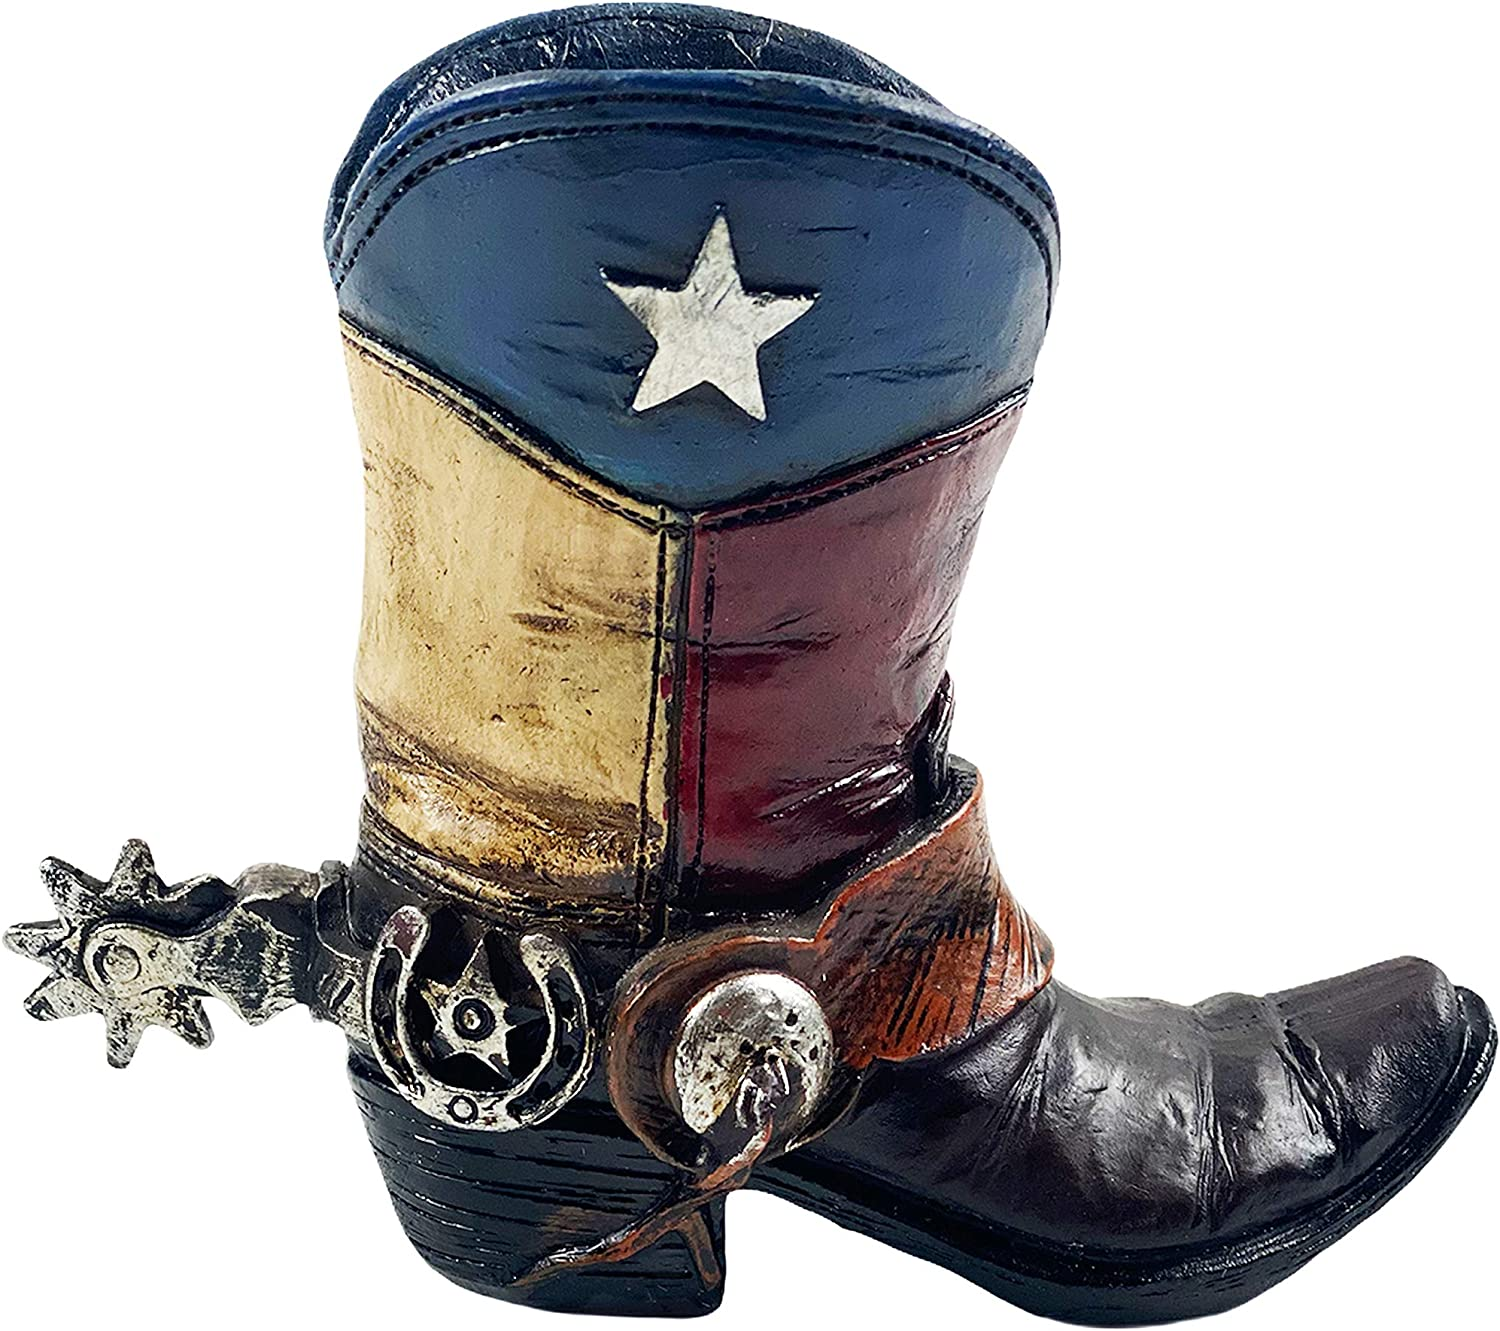 Urbalabs Western Cowboy Boot Texas Flag Pencil Holder Vase Distressed Decorative Cowboy Boots with Spurs Home Office Rustic Decor Country Living Pen Holder for Desk